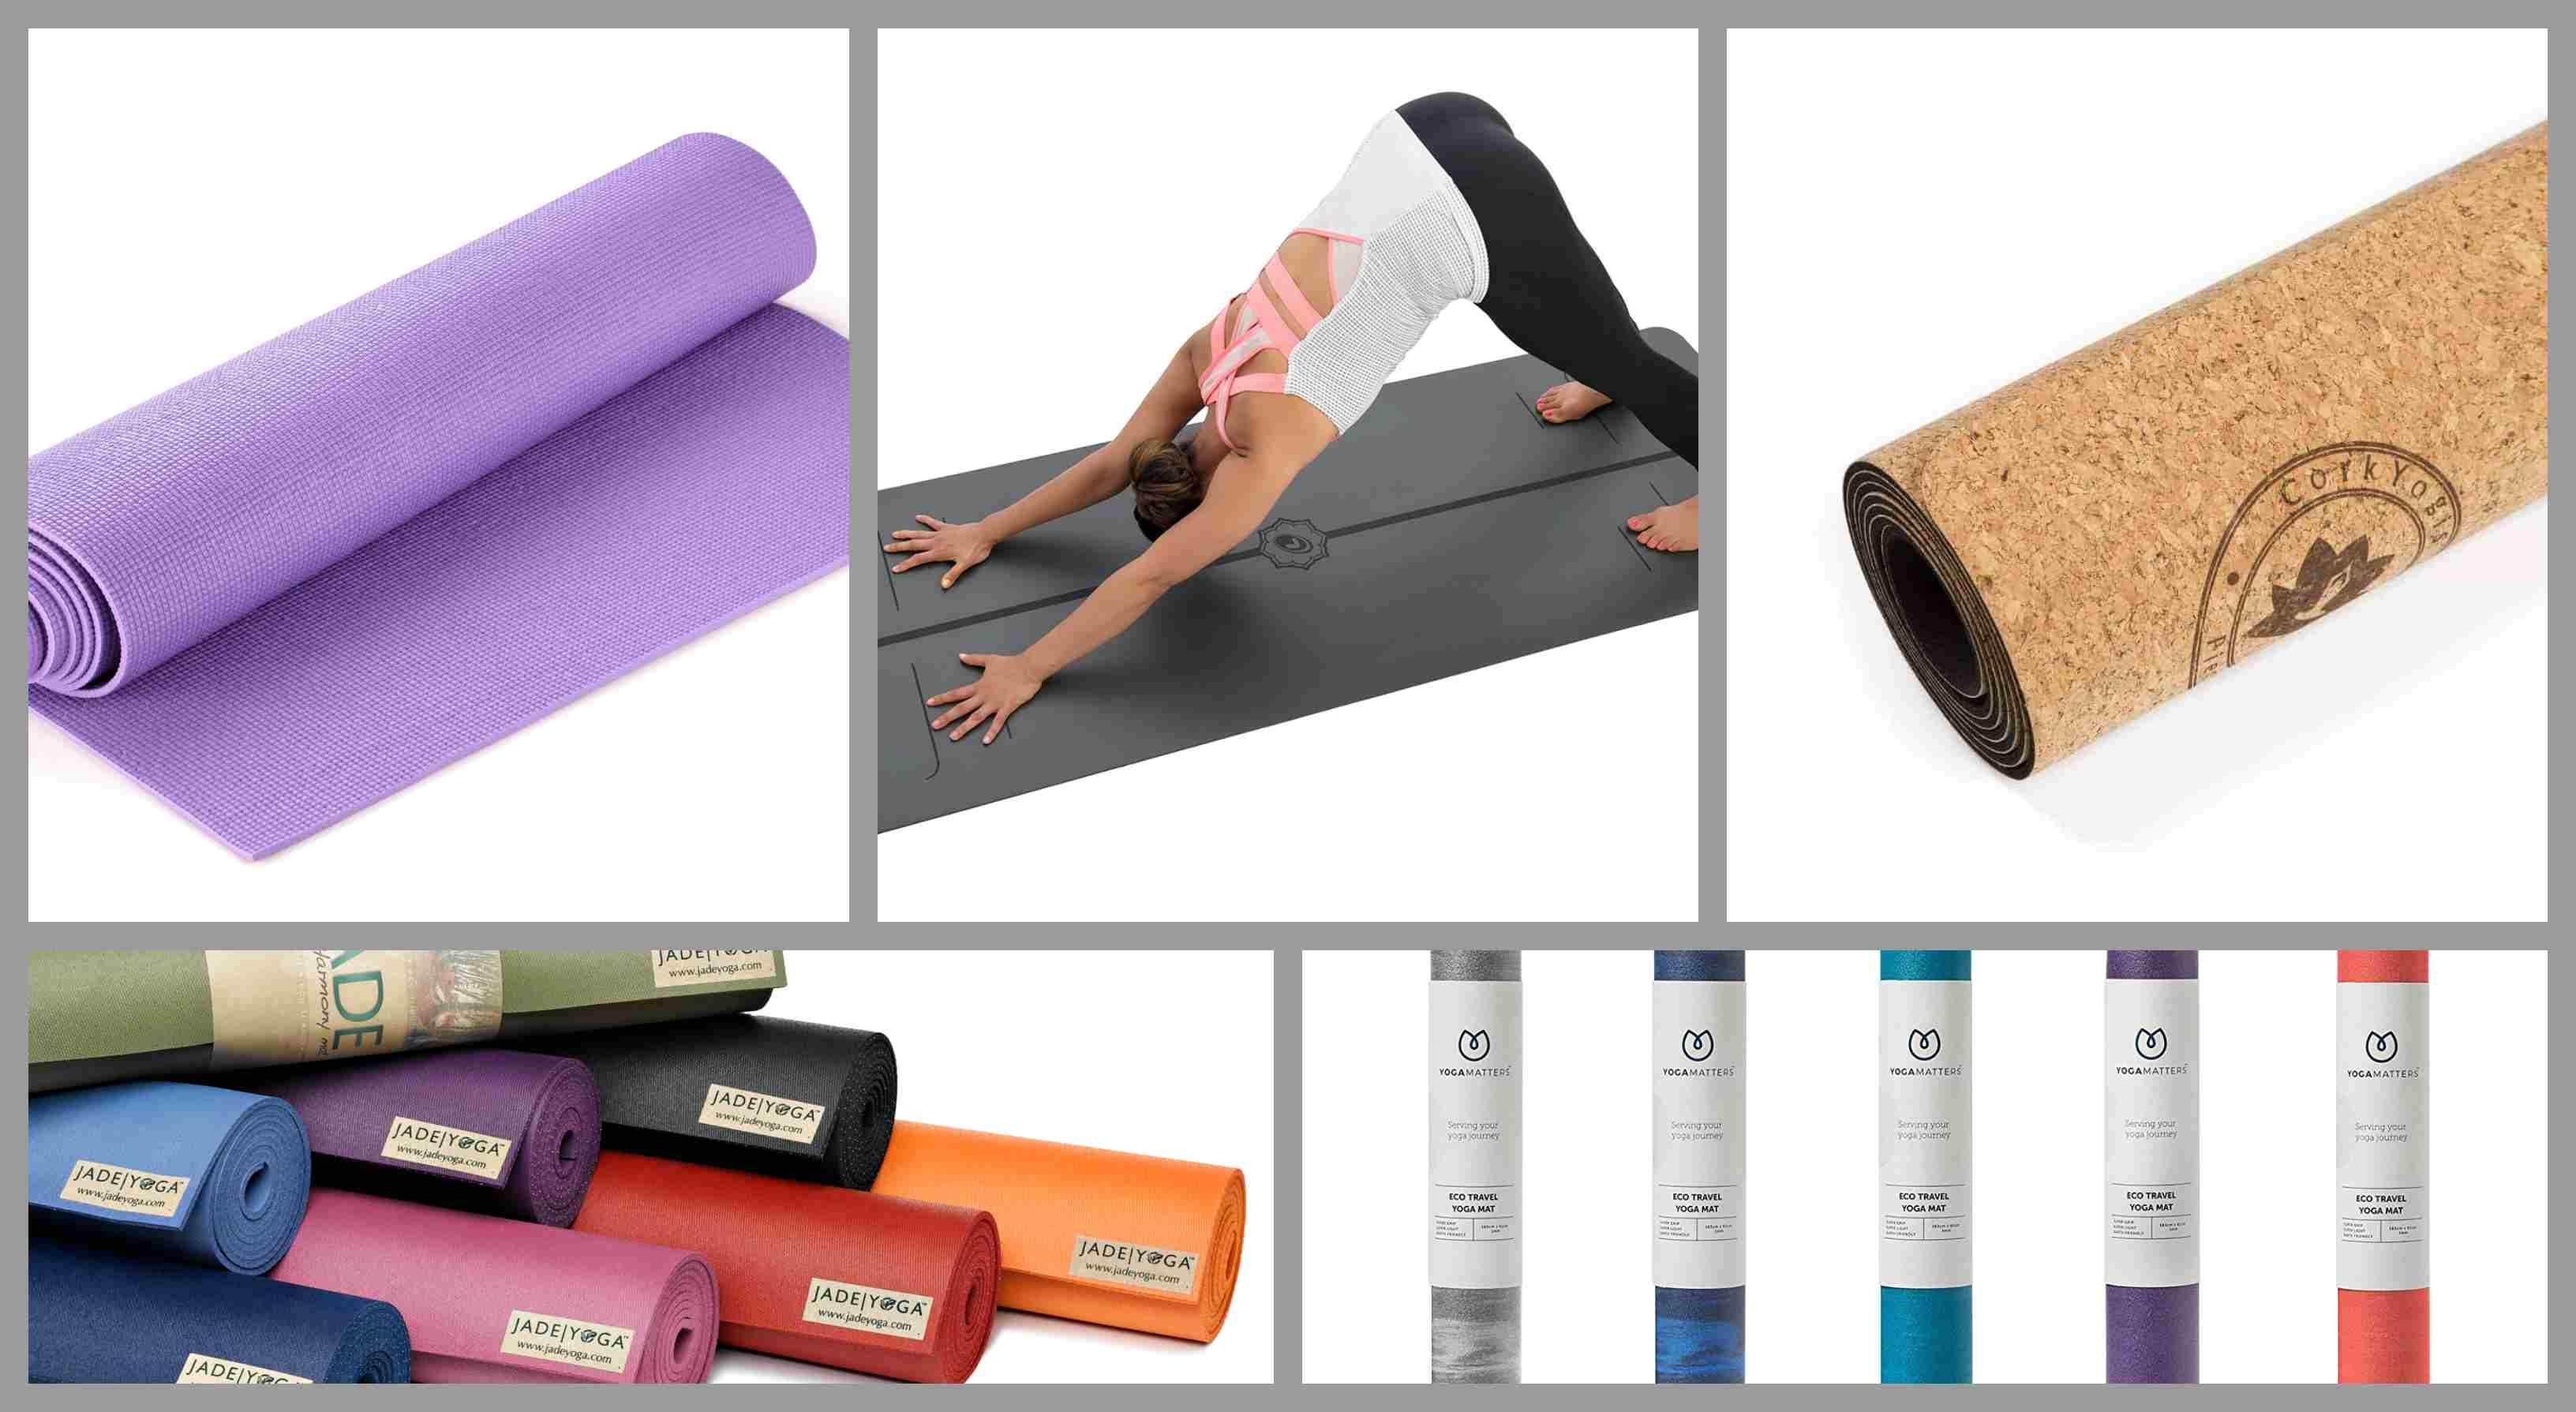 Best Yoga Mats 2020 For Home And Class All Budgets Considered